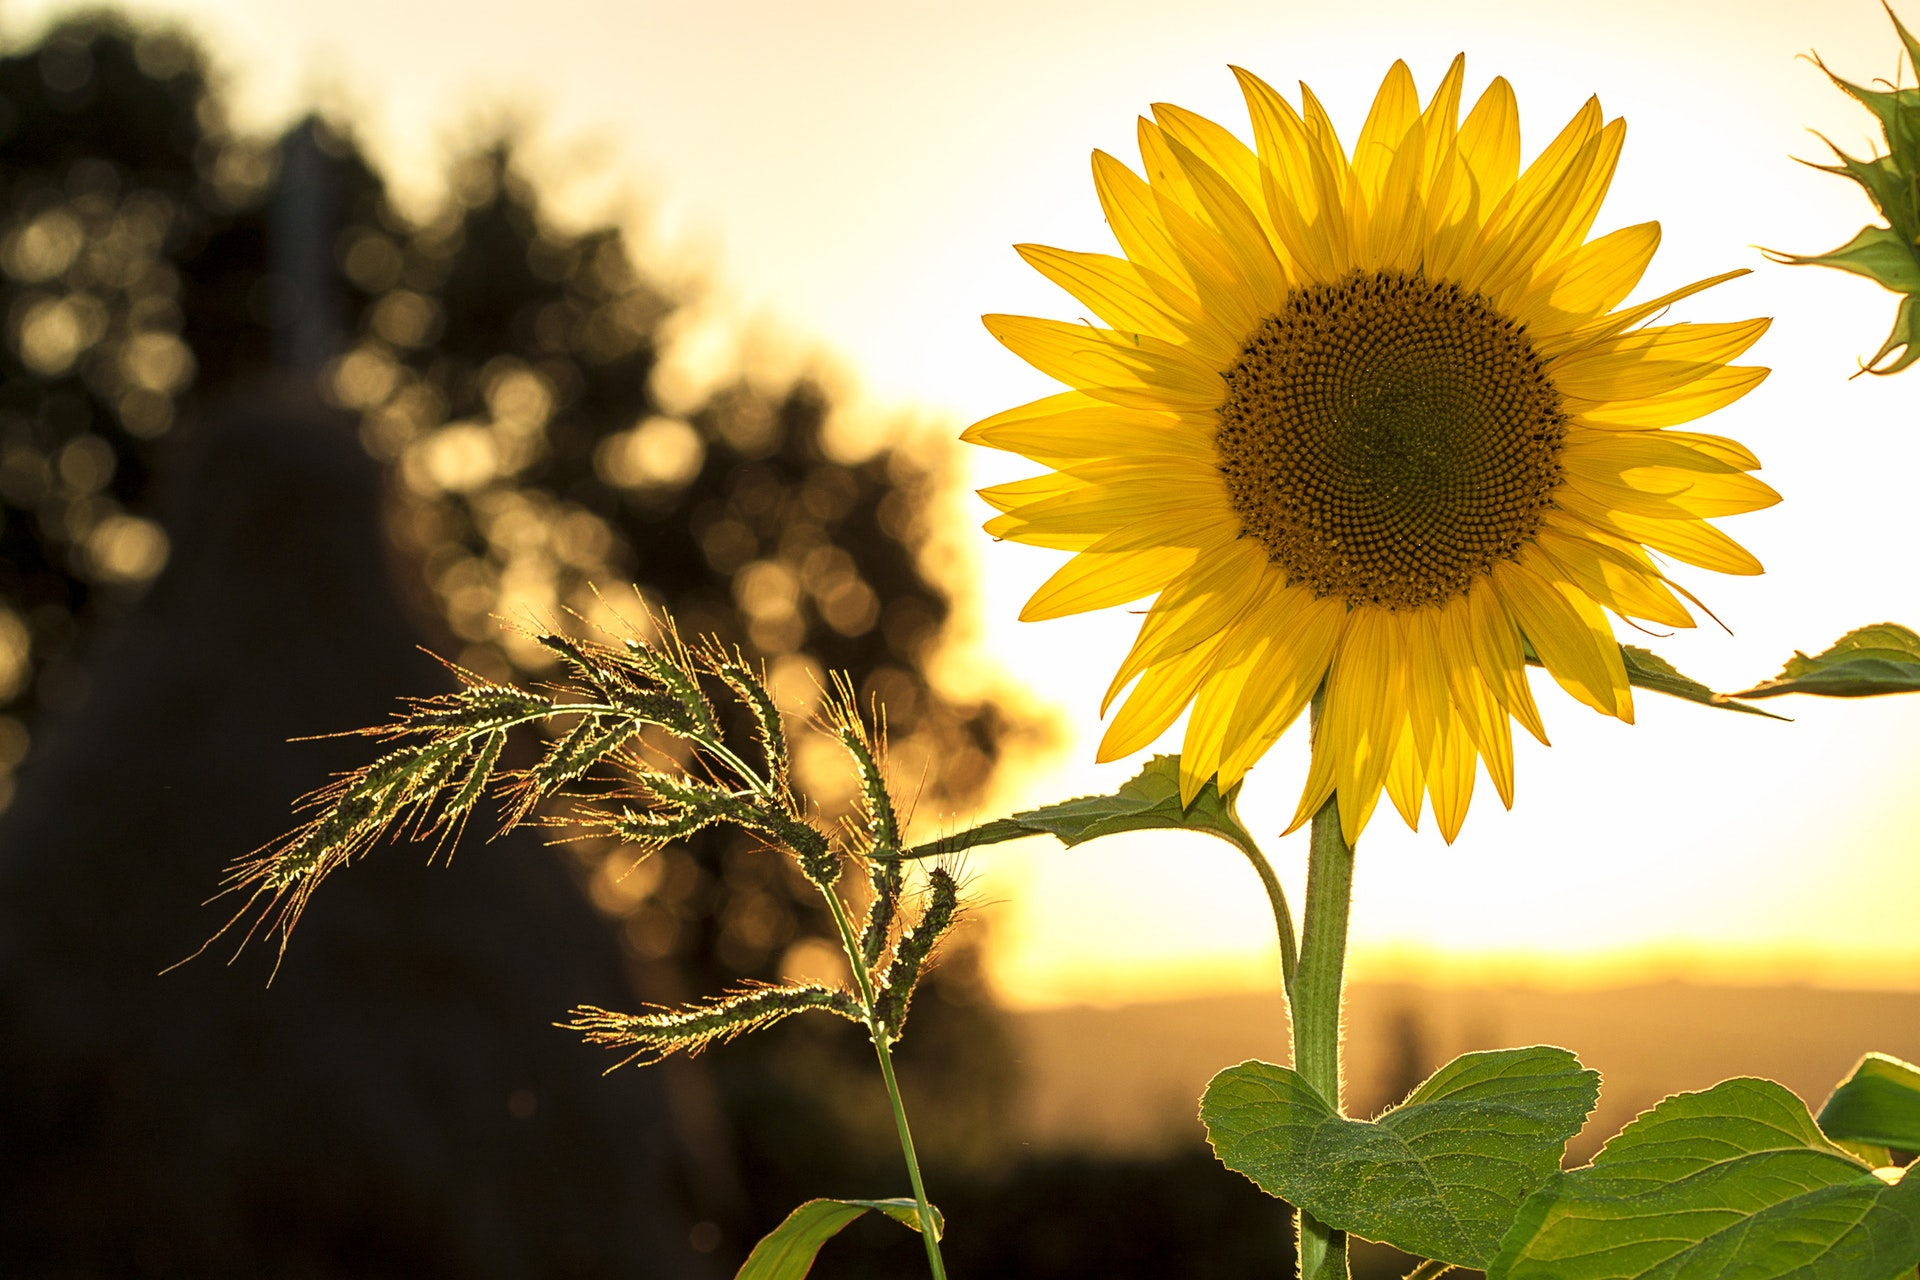 Sunflower with sunset stress management